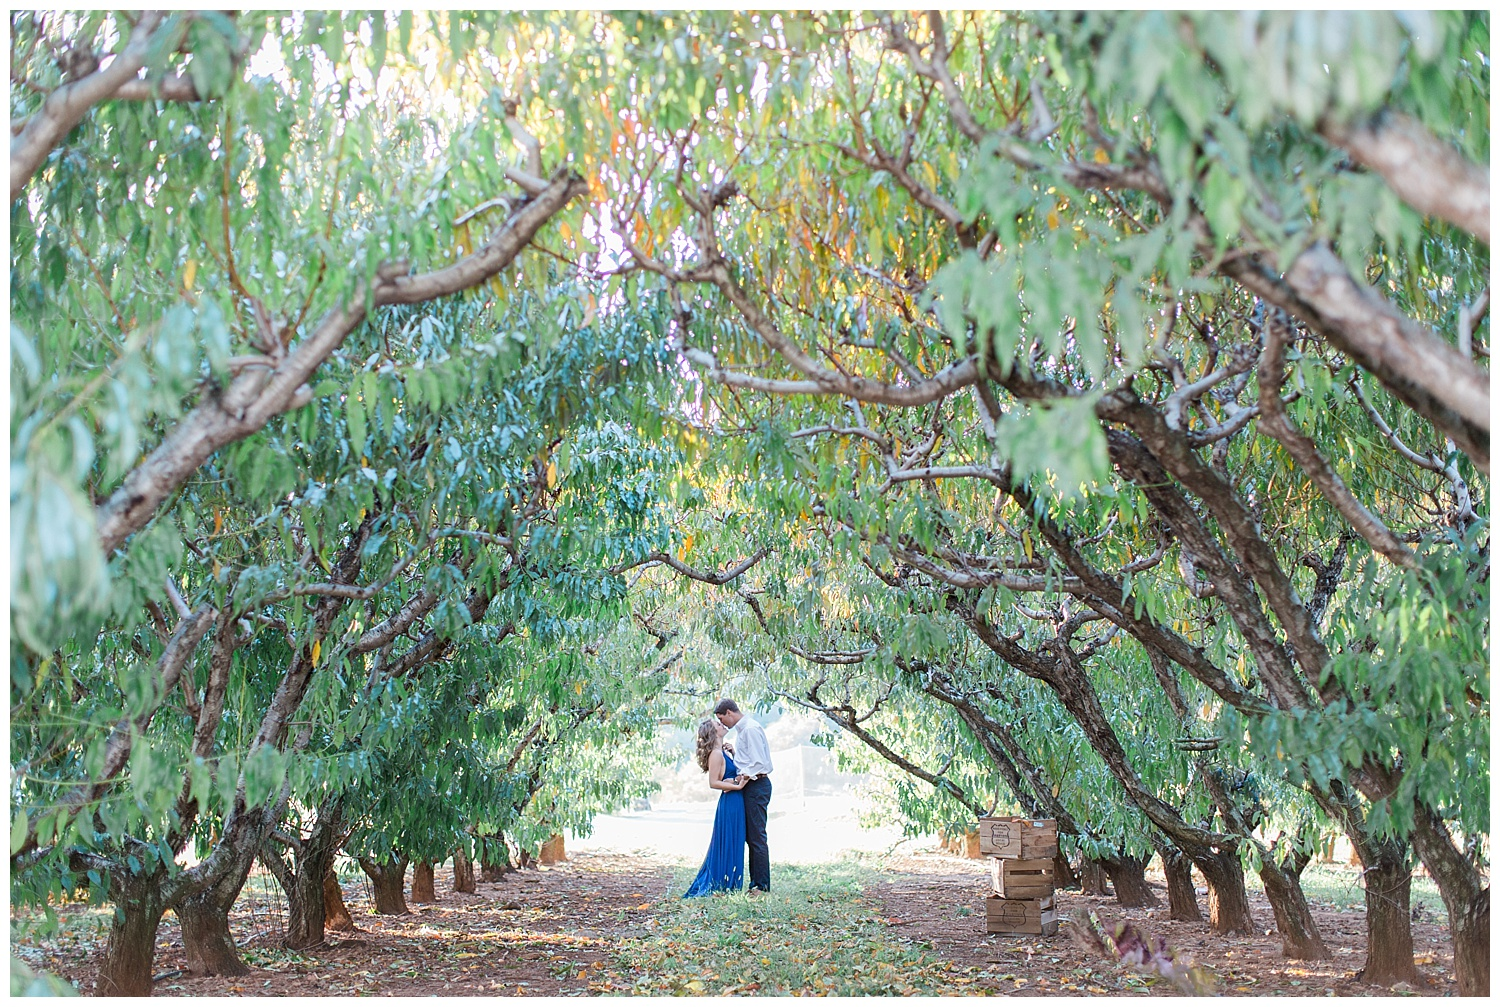 charlottesville_wedding_photographer_chiles_peach_orchard23.jpg